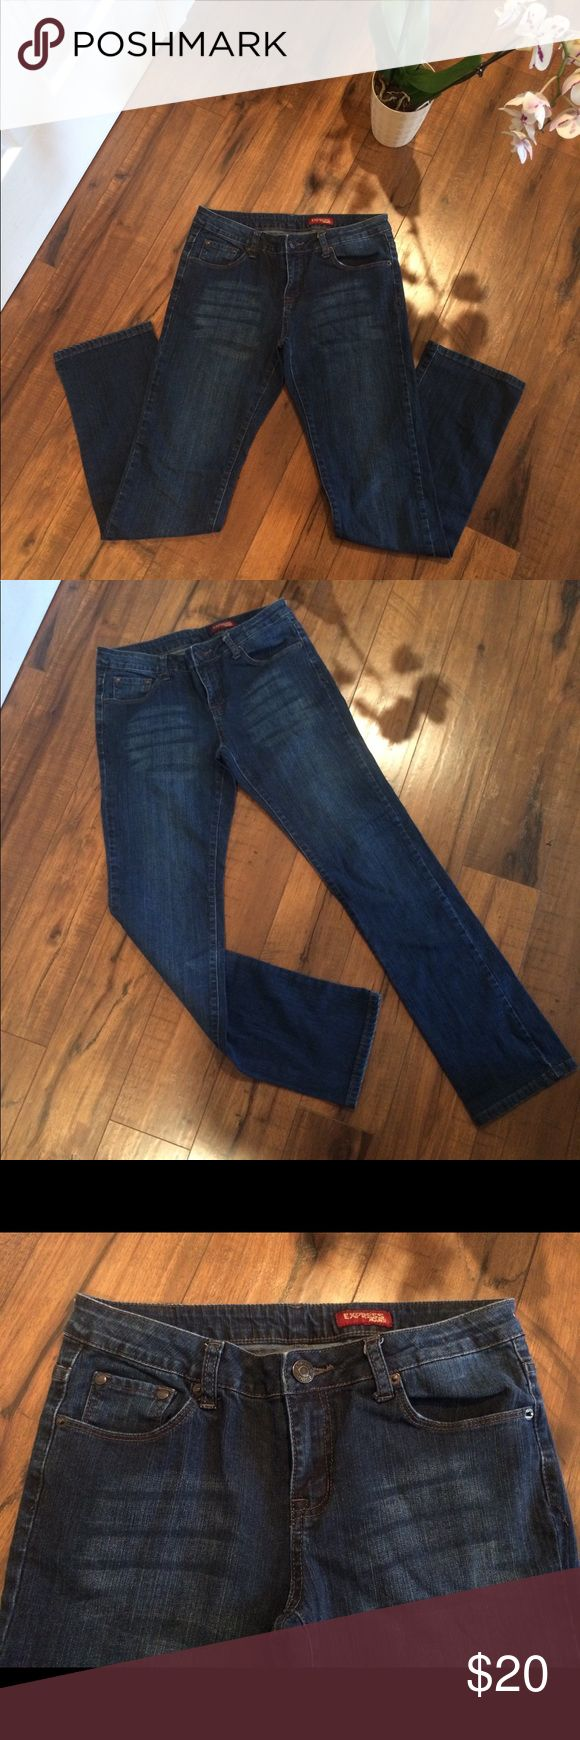 Express women's jeans.  Size 8. Women's express dark blue jeans.  Style is Zelda.  Like new!  No fringes or tears.  98% cotton, 2% spandex.  Length is 39 inches and the rise is 8 inches. Express Jeans Straight Leg